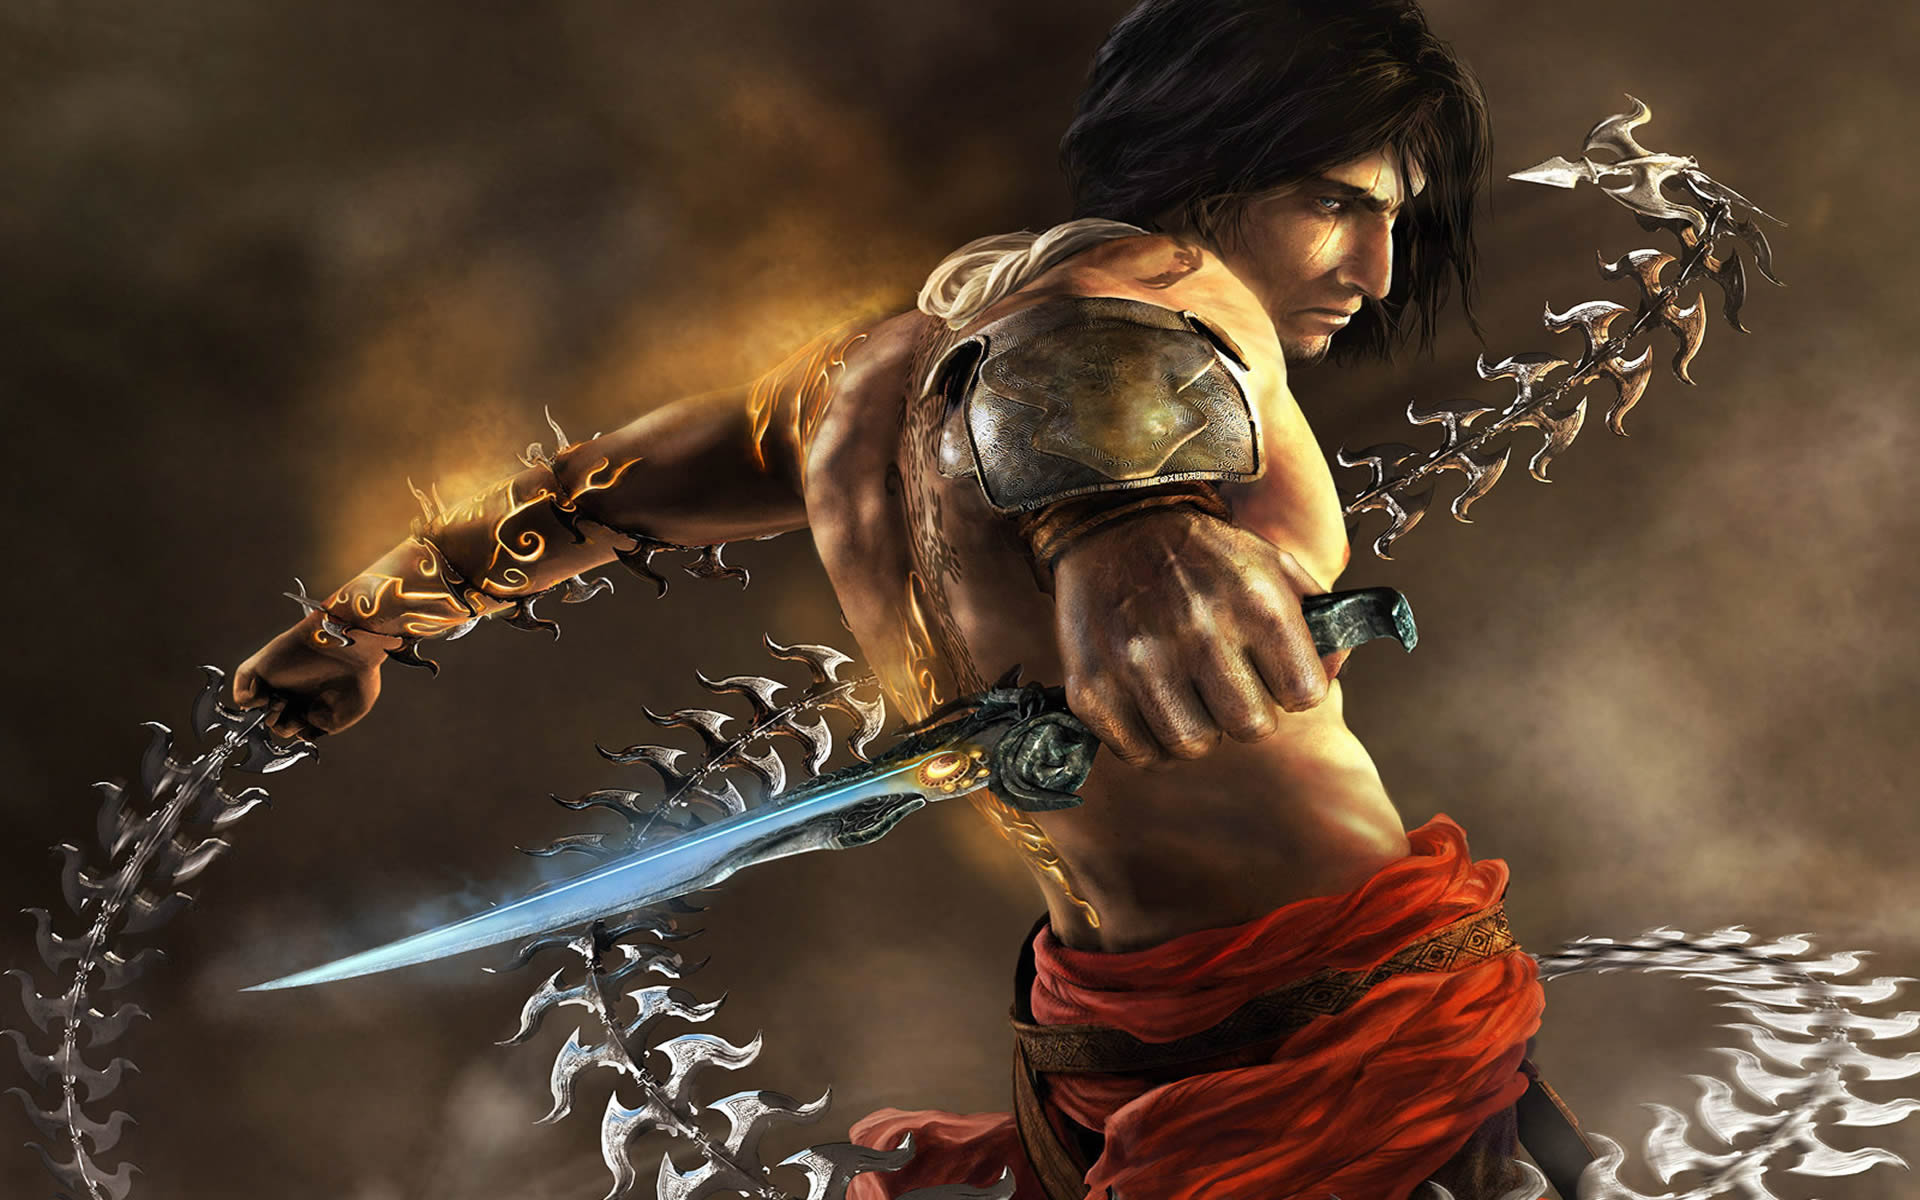 With Dagger And Chain Whip Prince Of Persia Two Thrones Wallpaper